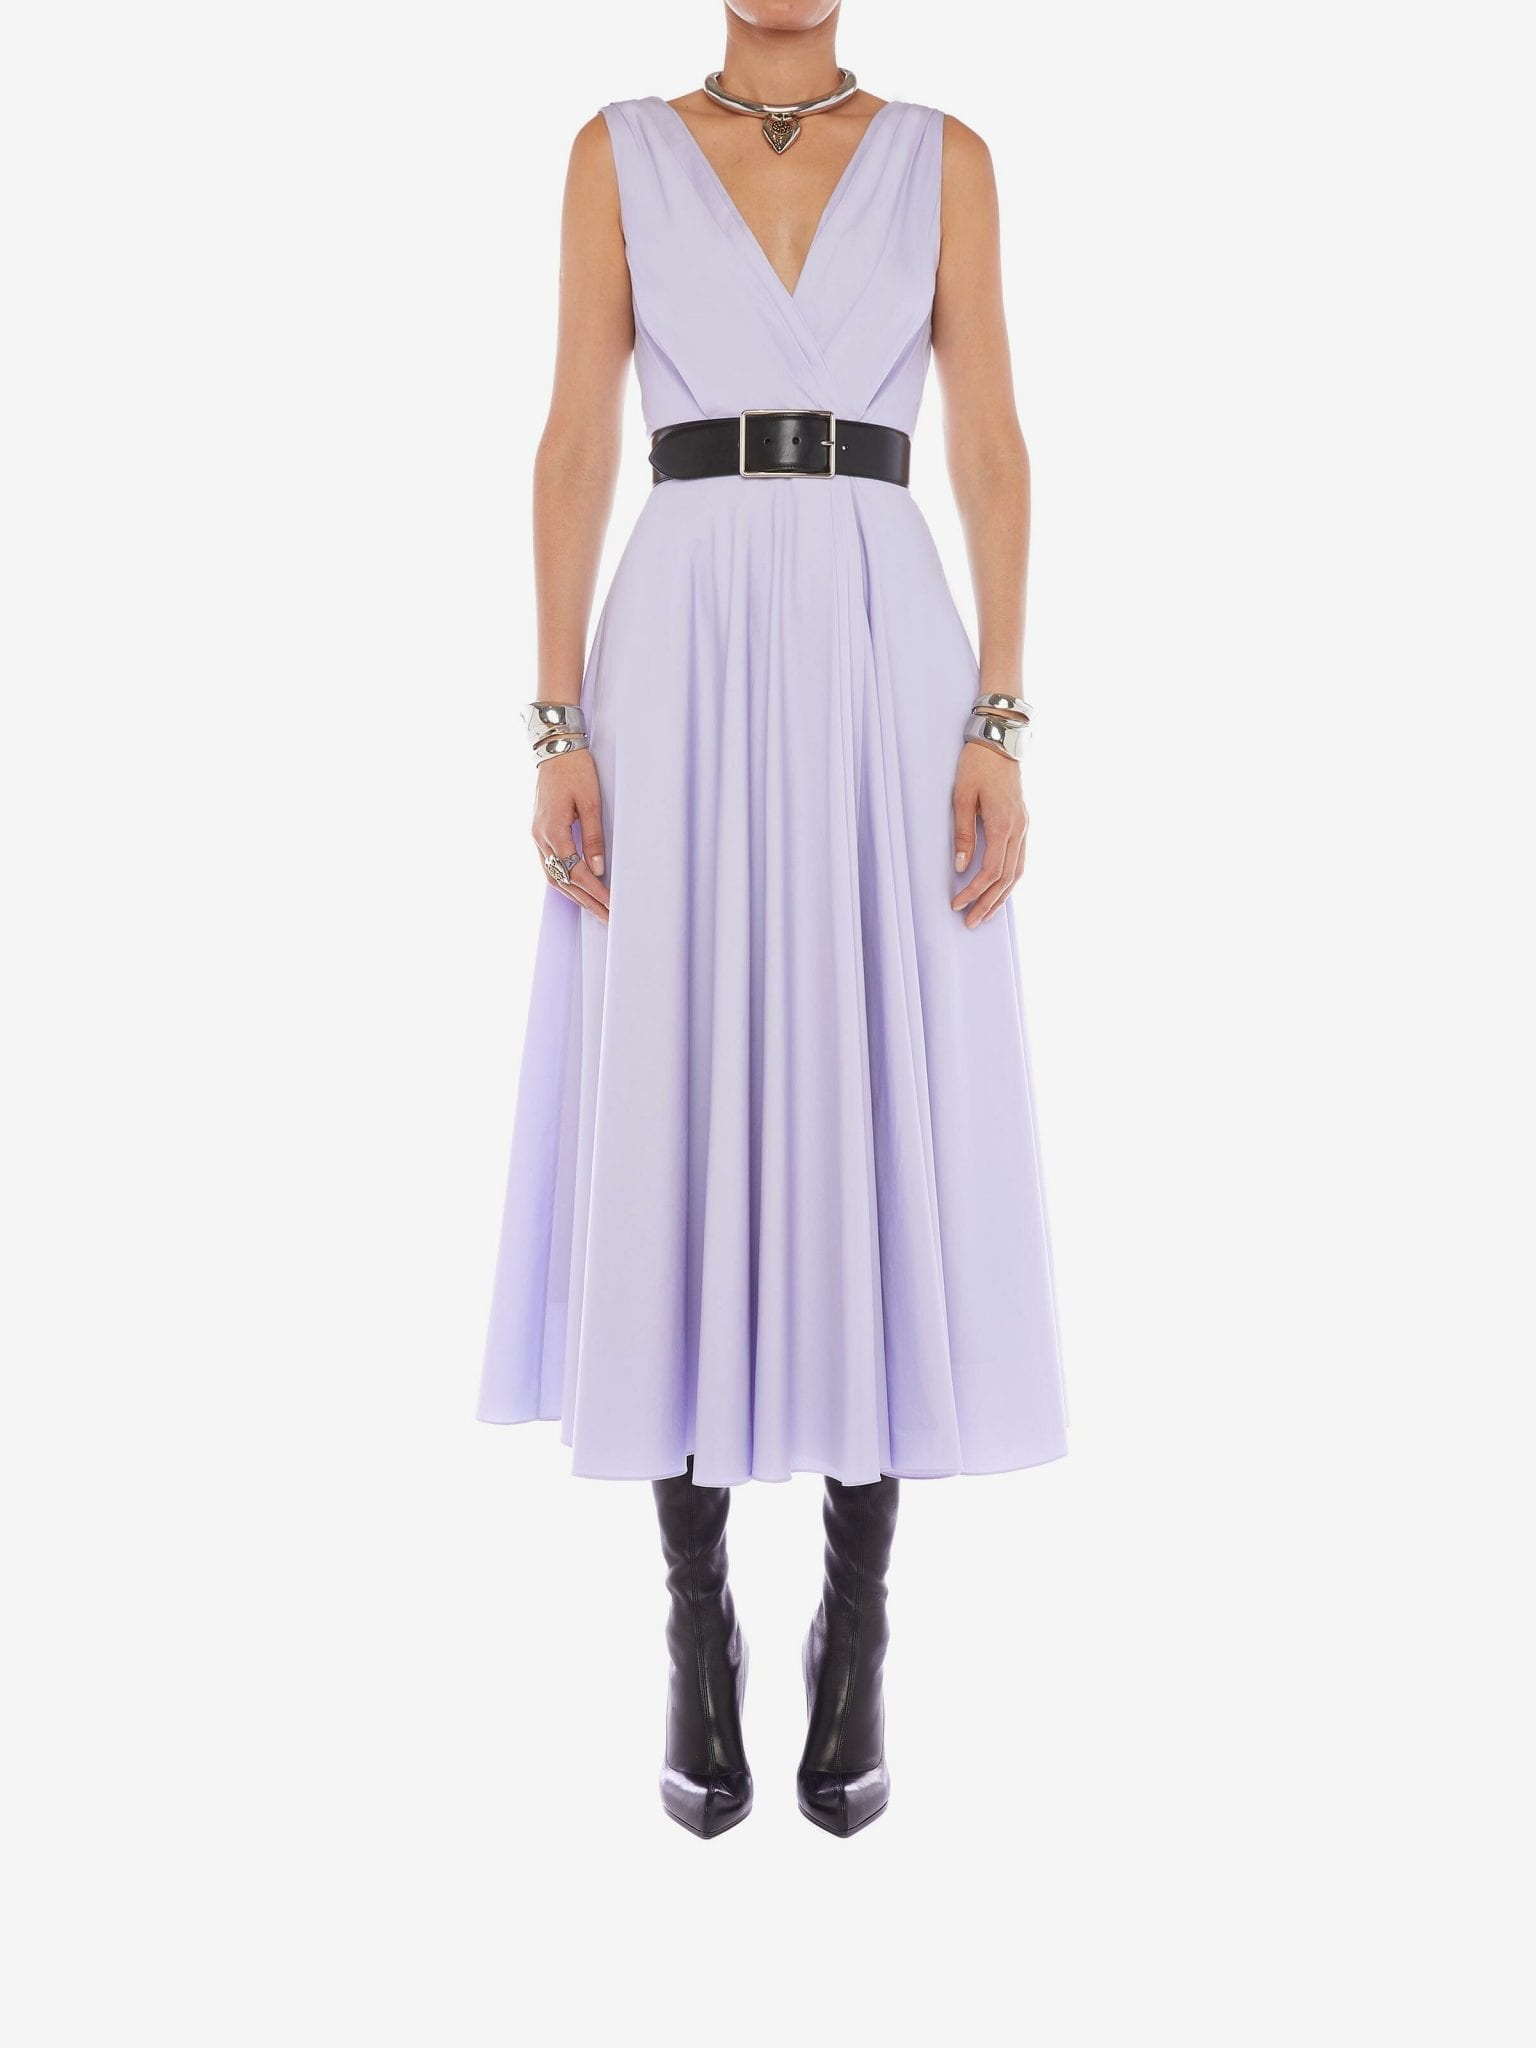 ALEXANDER MCQUEEN Cotton Poplin Drape Midi Dress